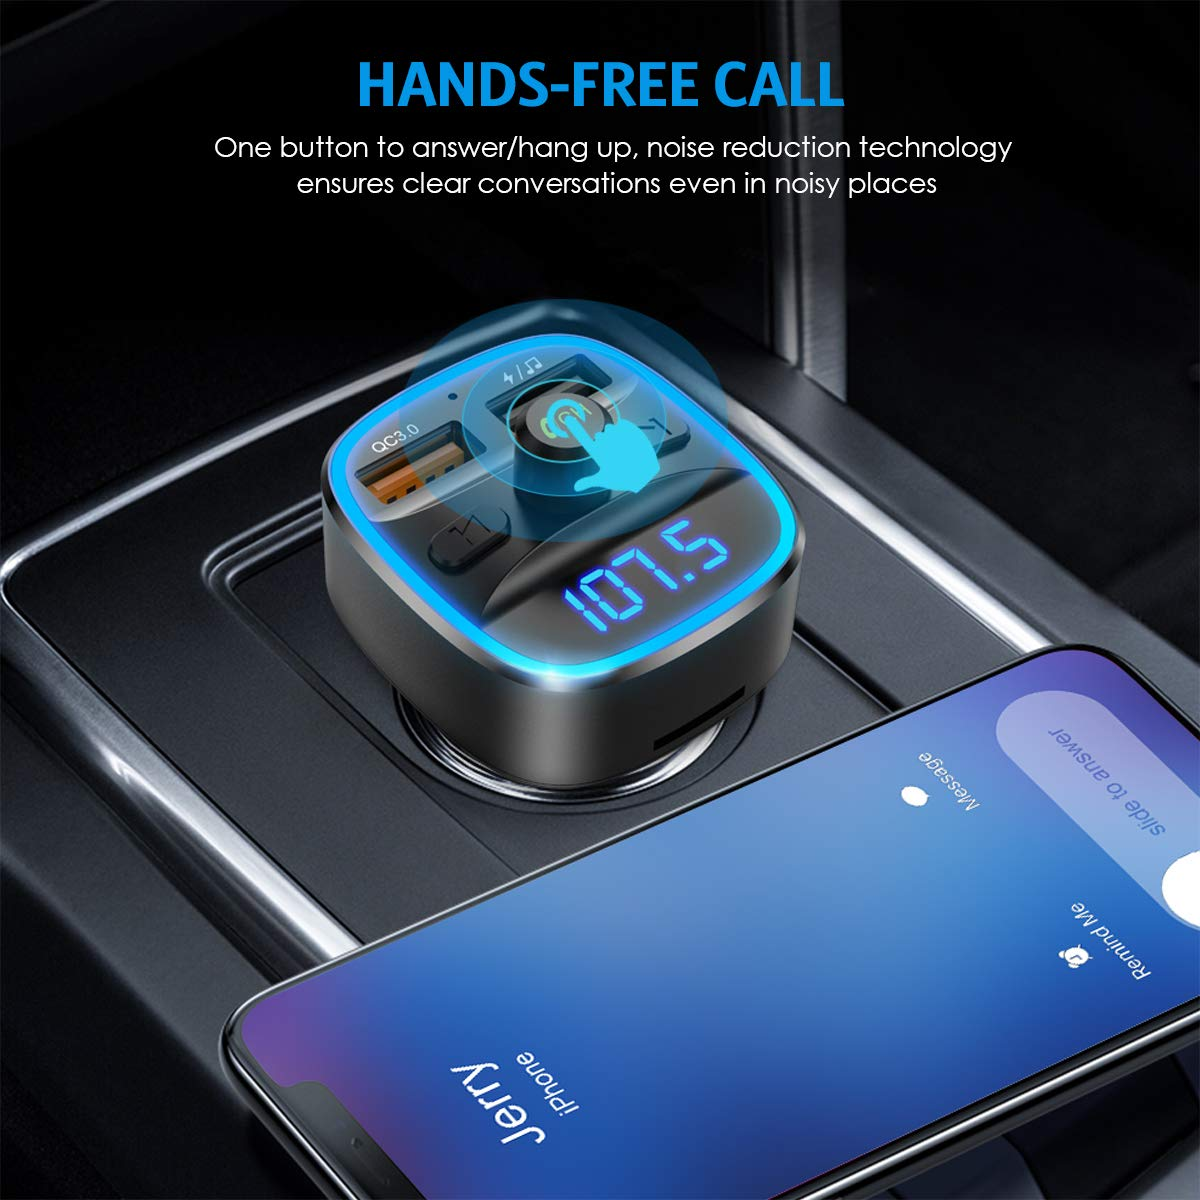 Bluetooth FM Transmitter for Car 7 RGB Color LED Backlit Radio Transmitter Supports TF Card Hands-Free Calling 2020 Upgraded New Version QC3.0 Dual USB Ports Adapter Car Kit USB Disk